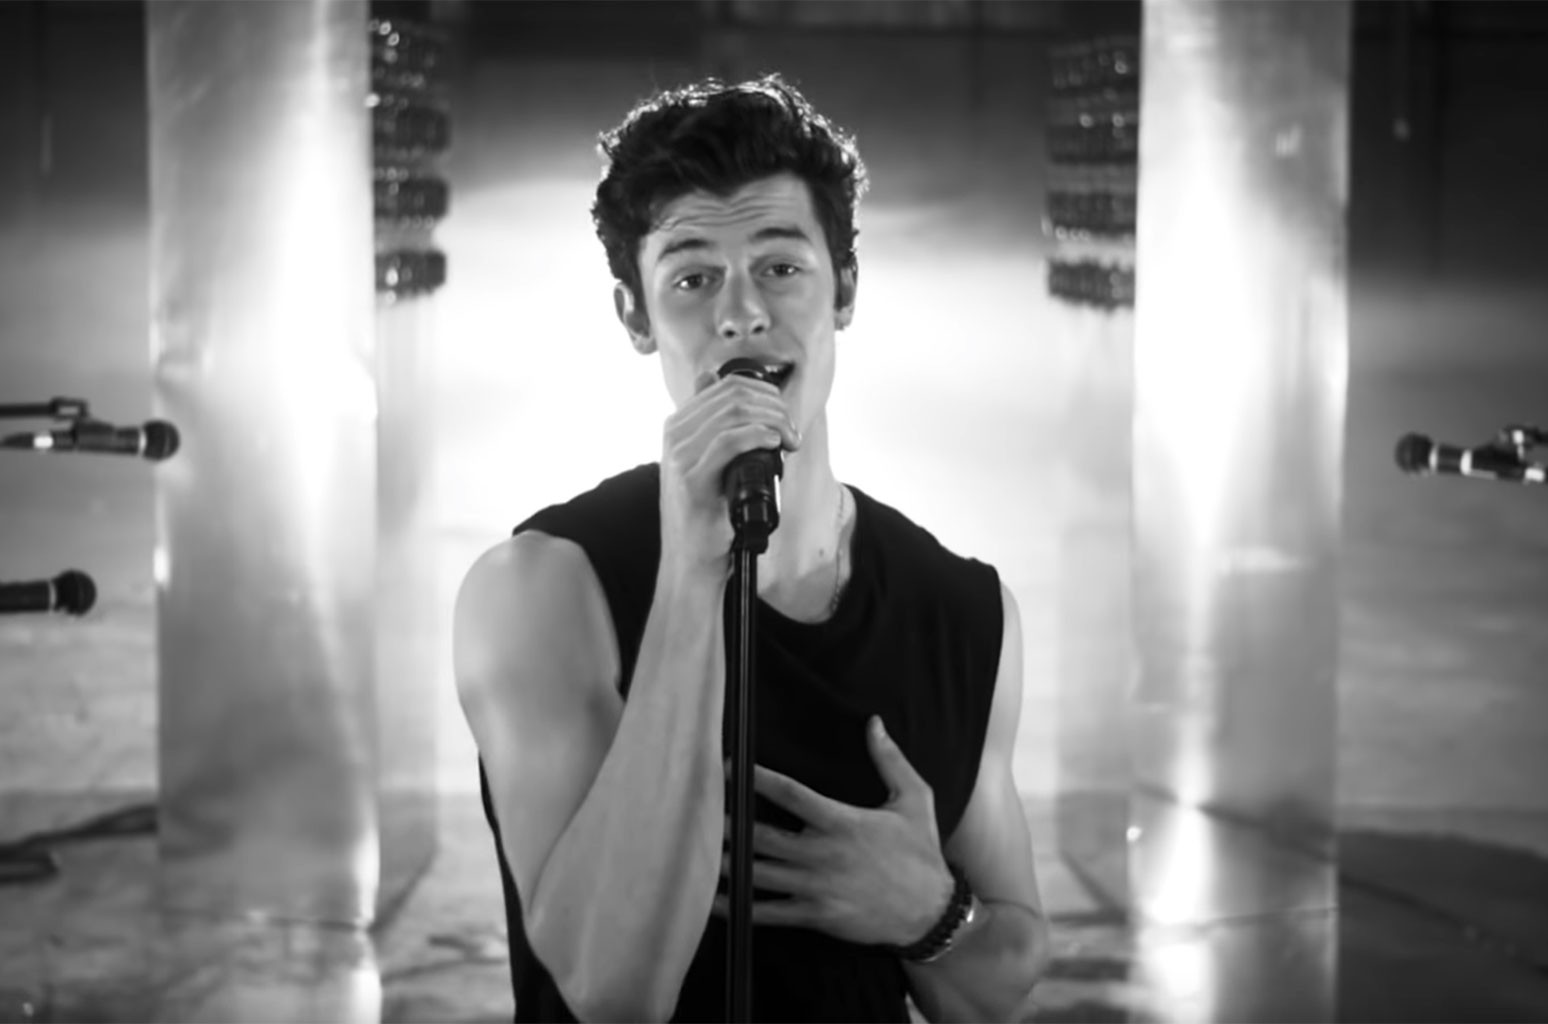 shawn-mendes-if-i-cant-have-you-2019-vid-billboard-1548-1558009914305116974877.jpg